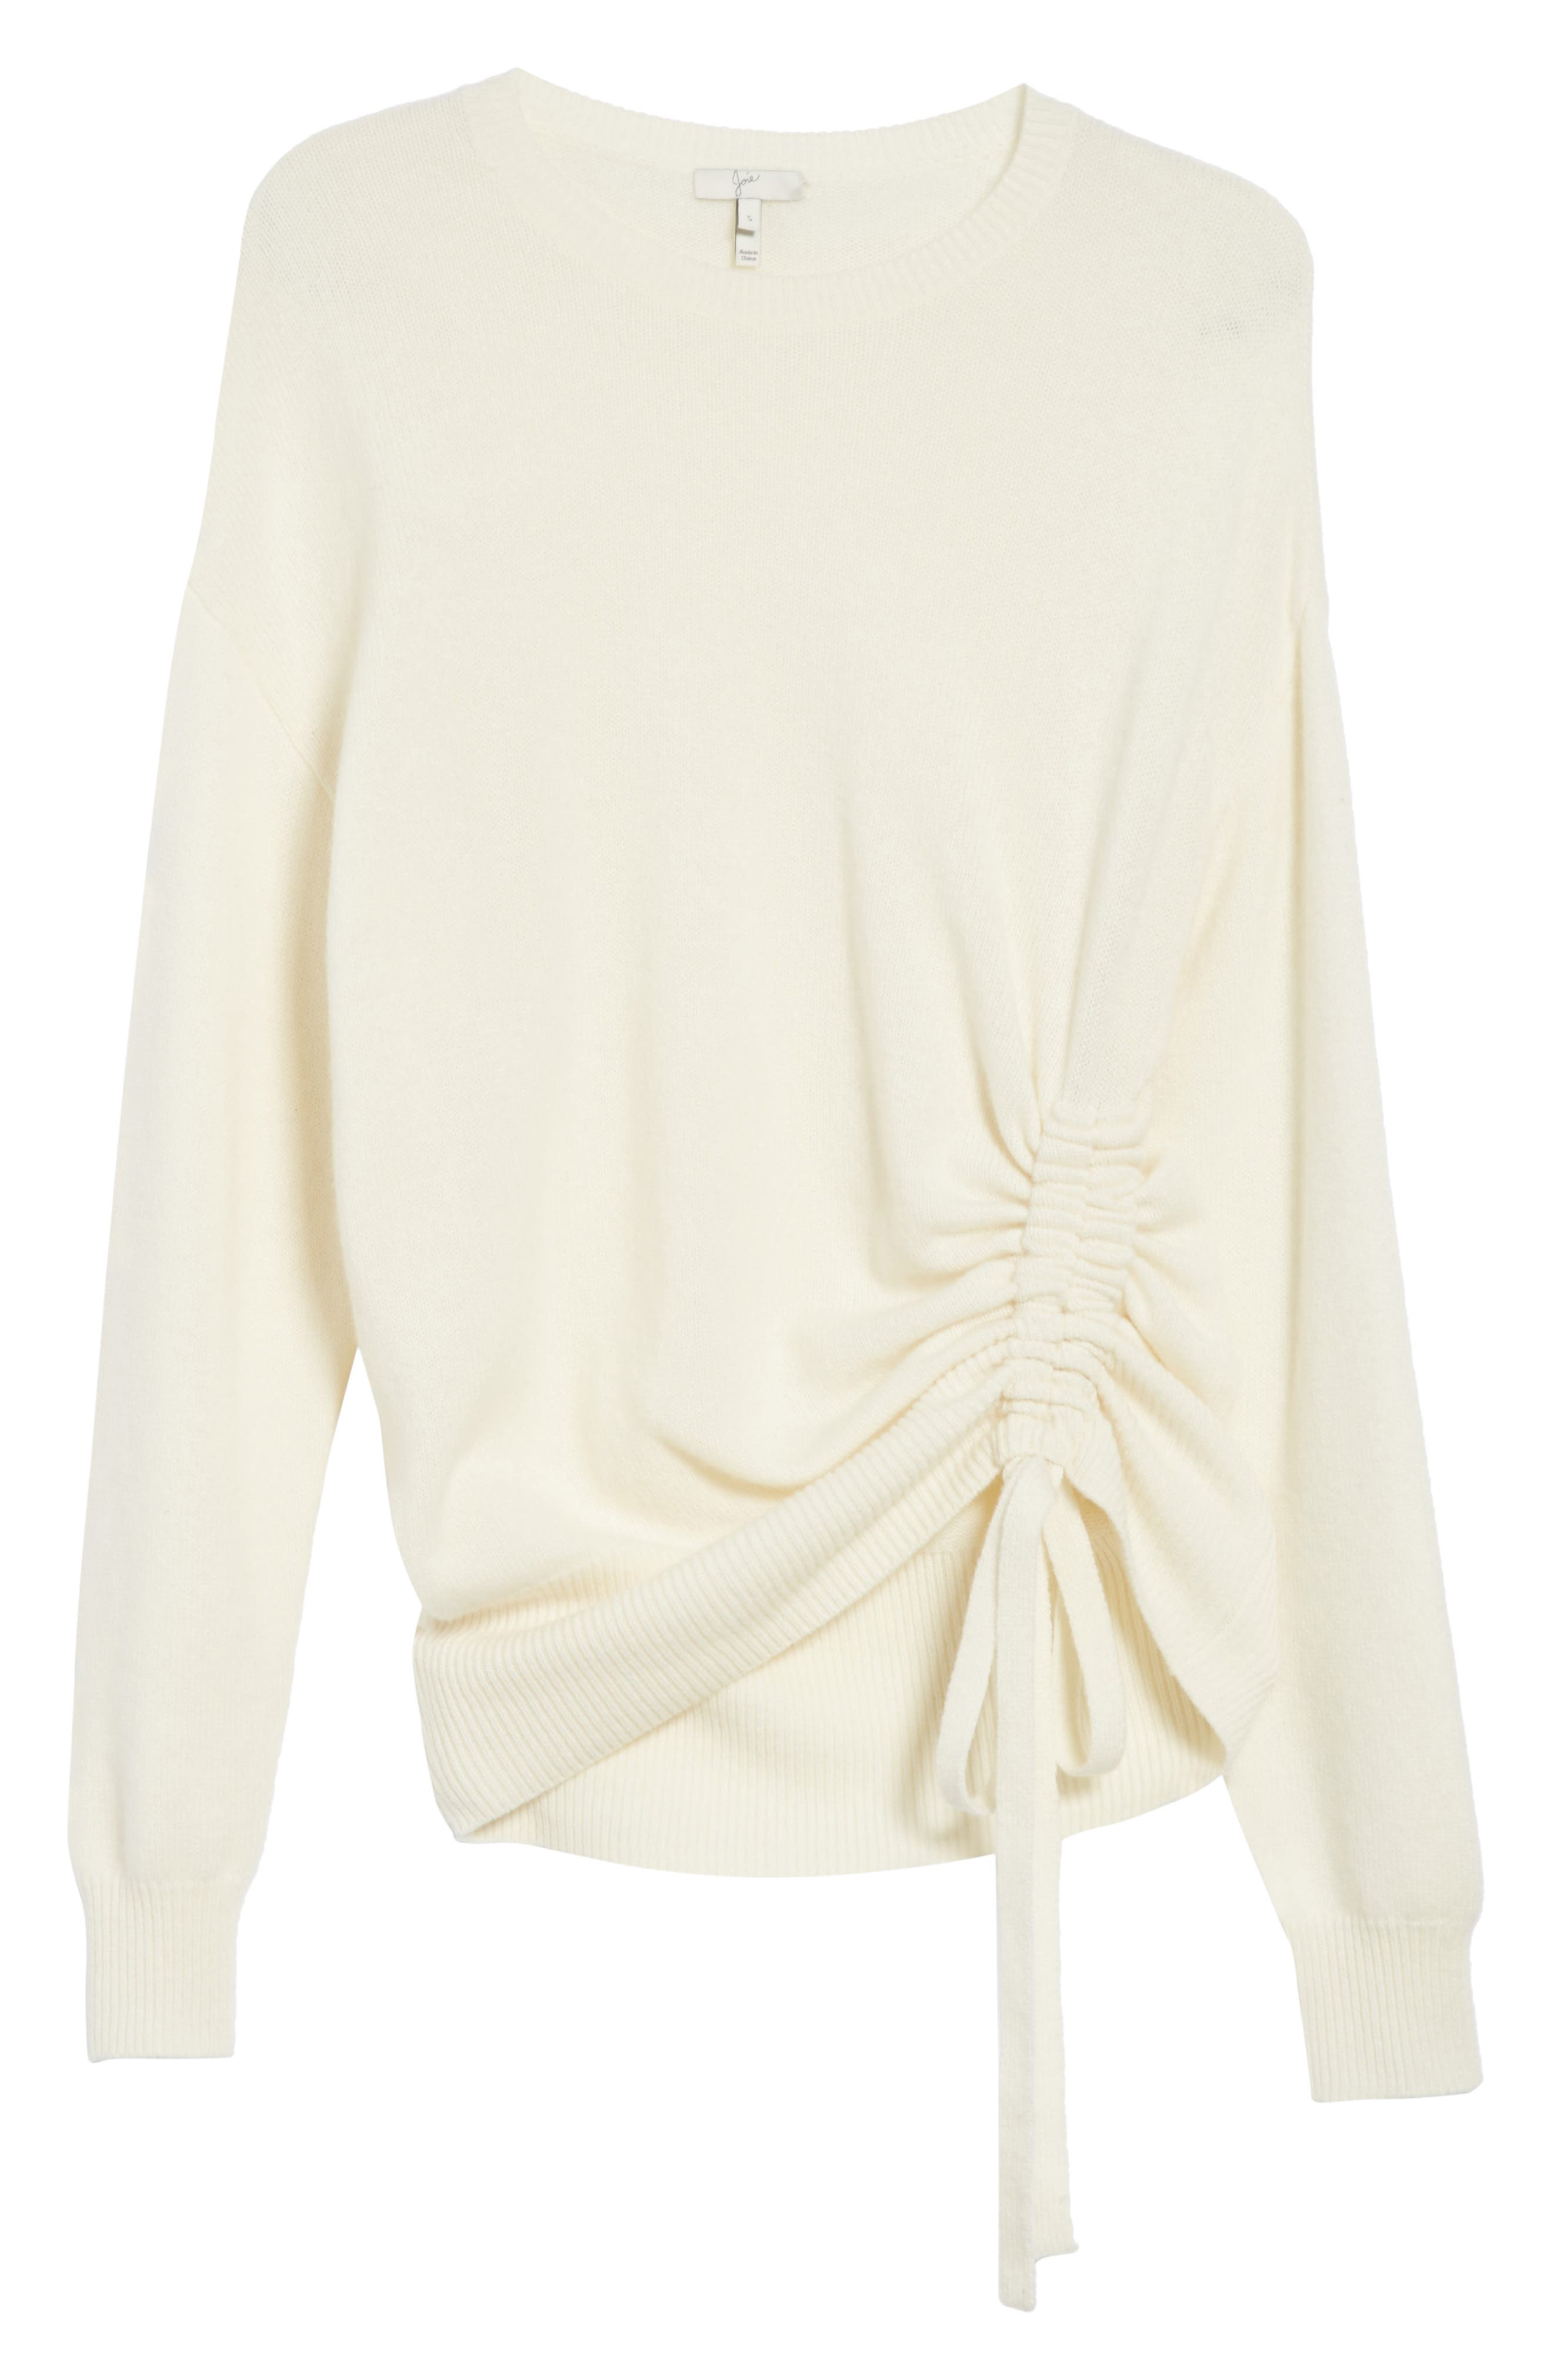 JOIE,                             Iphis Wool & Cashmere Sweater,                             Alternate thumbnail 6, color,                             114